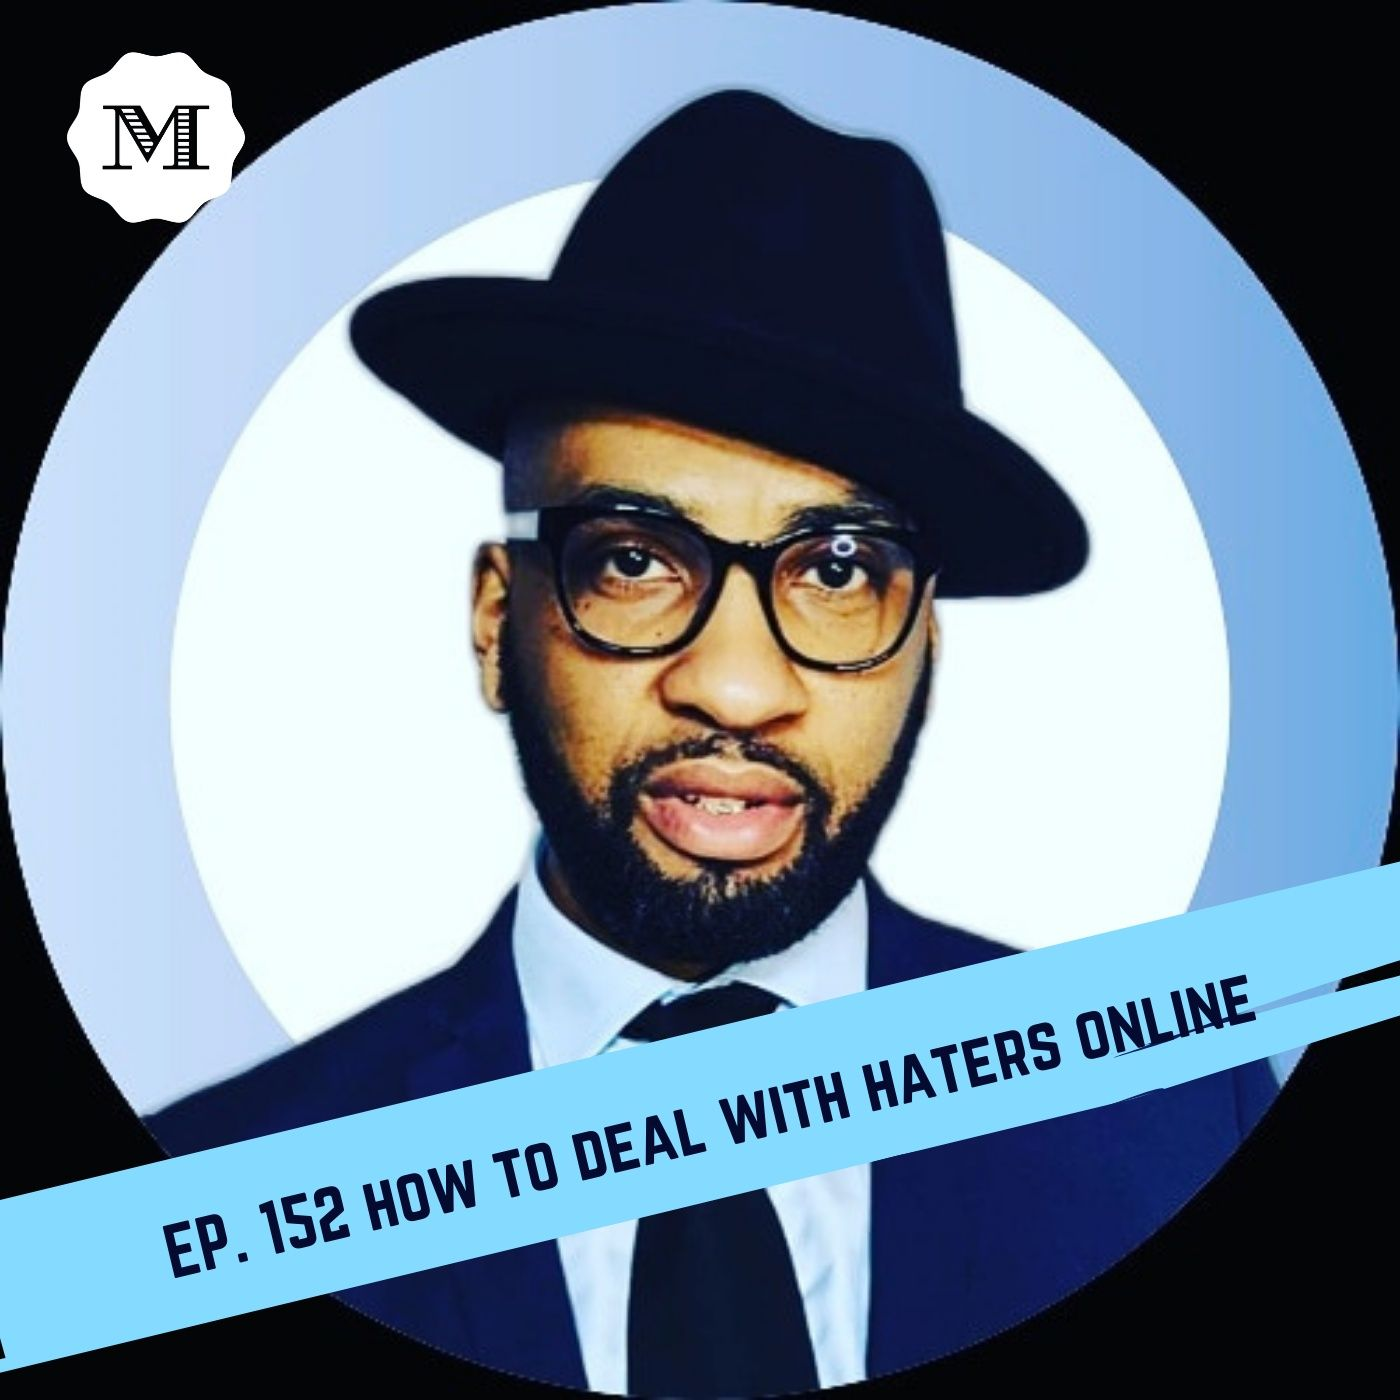 Ep. 152 How to handle haters online